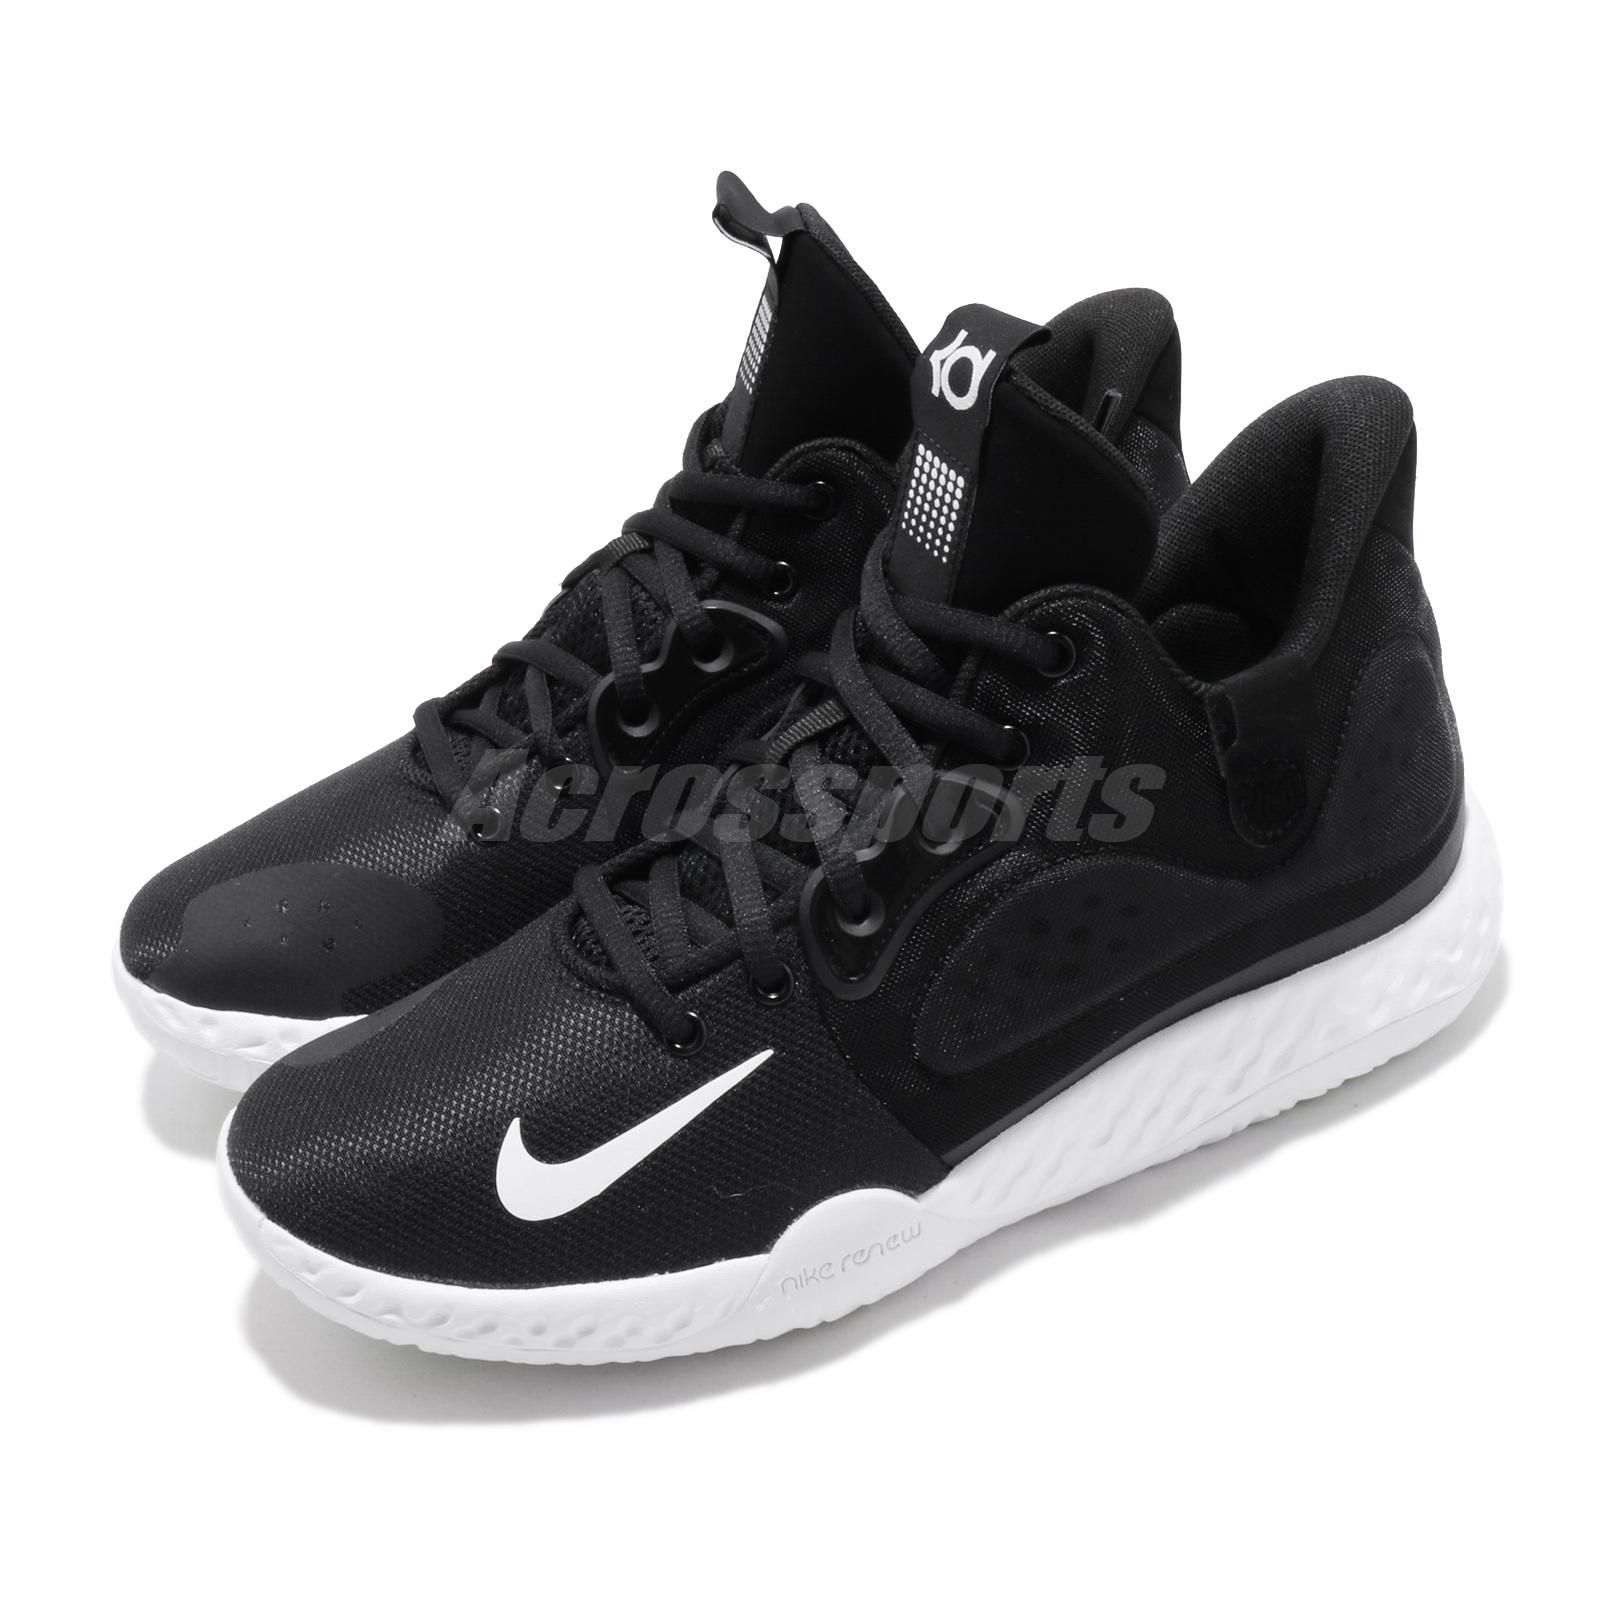 262ab4bc Details about Nike KD Trey 5 VII EP 7 Kevin Durant Black White Men  Basketball Shoes AT1198-001